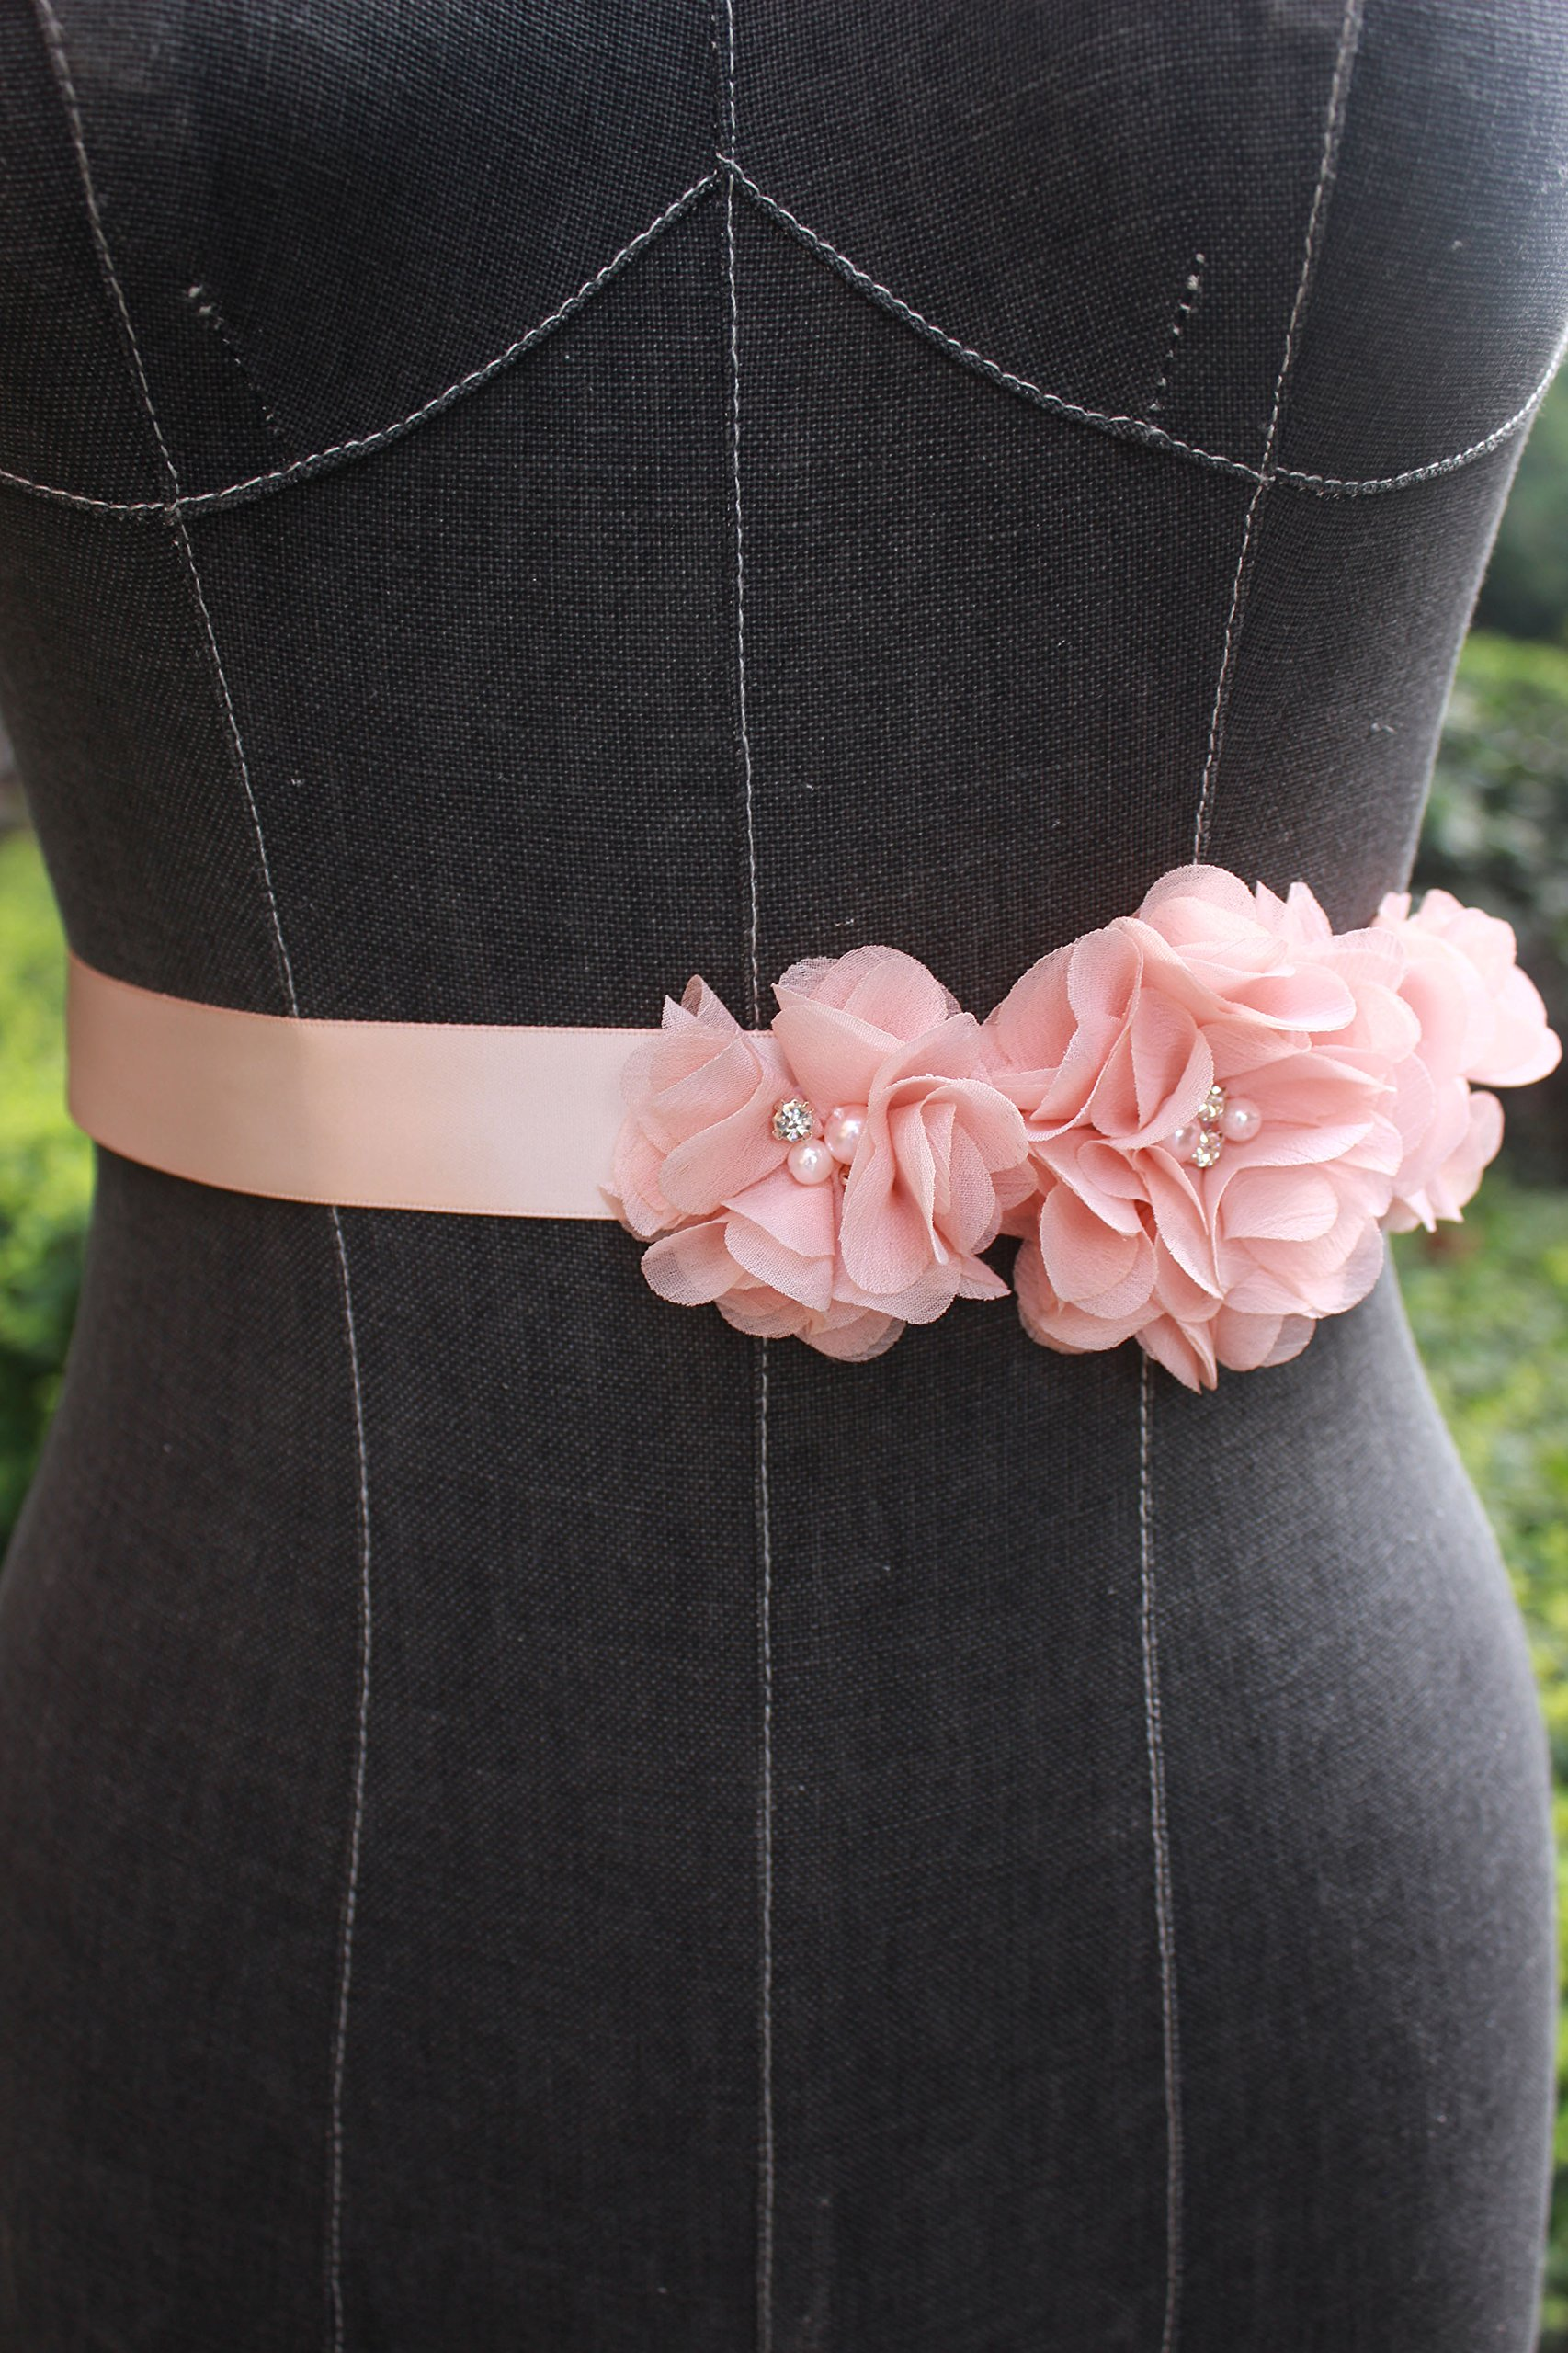 Bridesmaid and Flowergirls sashes wedding sash pearls flowers belts (Peach) by nania (Image #3)